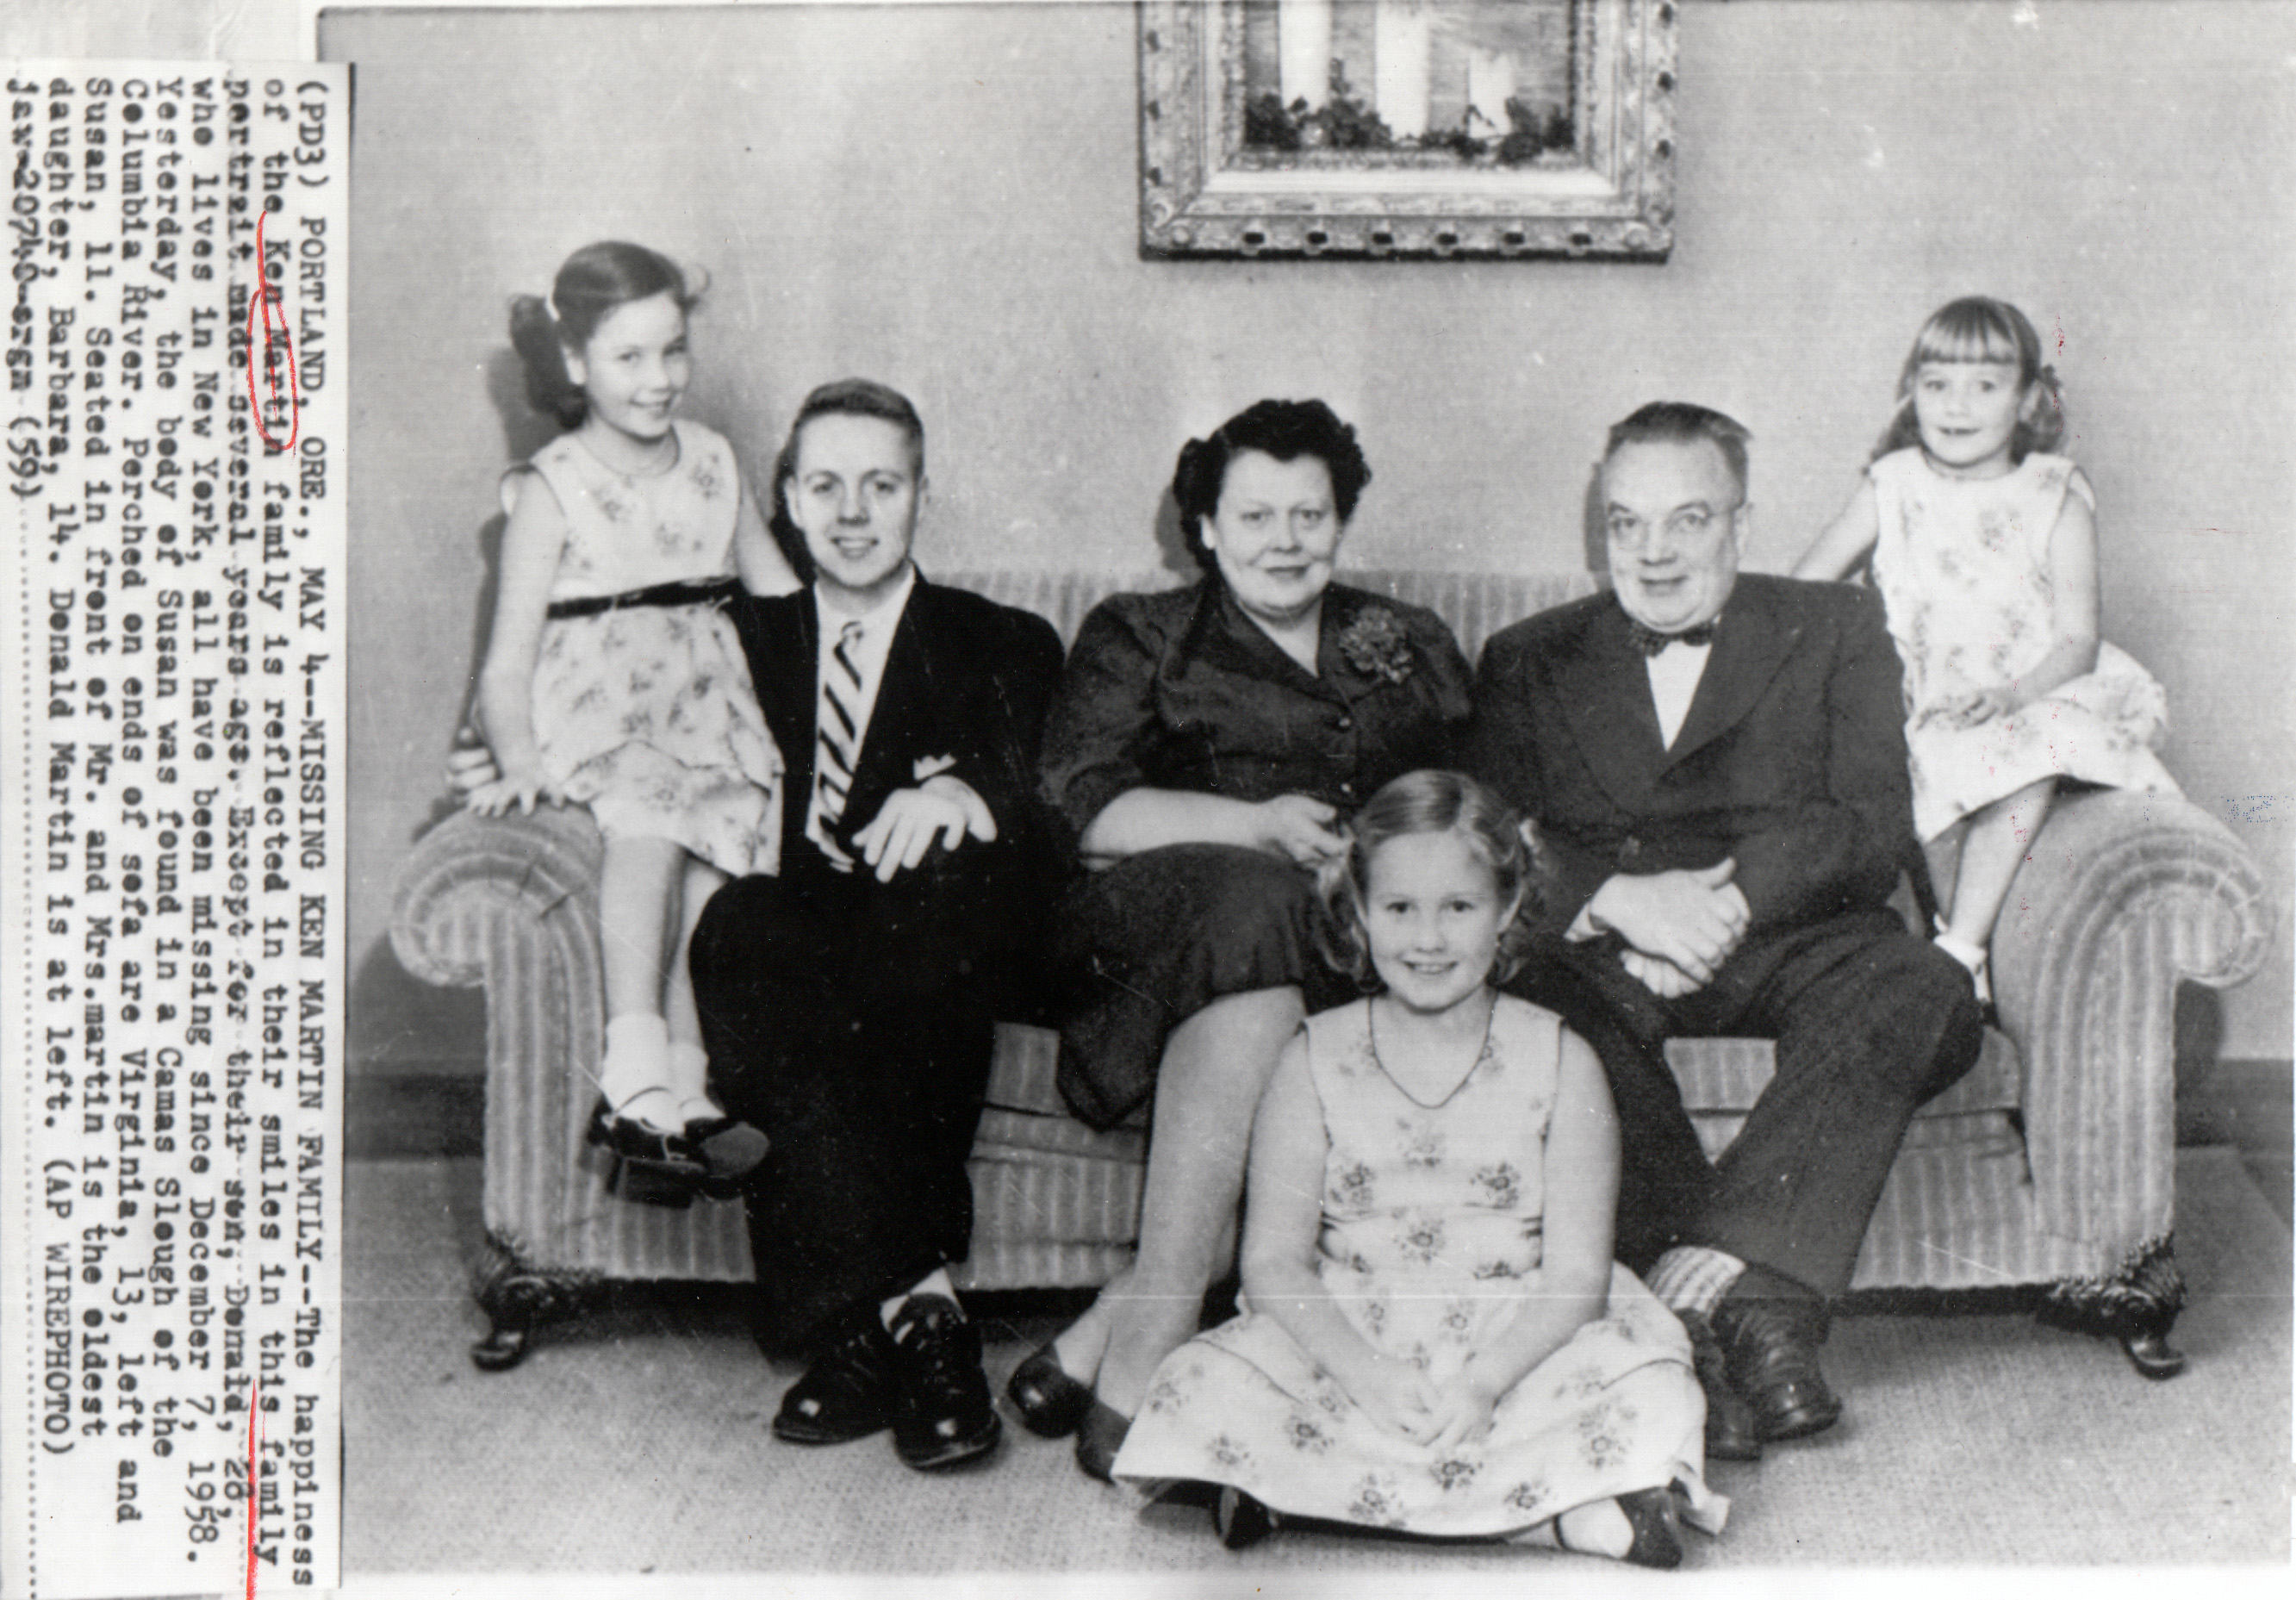 """""""The happiness of the Ken Martin family is reflected in their smiles"""" notes the caption of an AP Wirephoto published in May 1959, the day after the body of 11-year-old Susan (far right) was found in a Camas Slough. Other family members are (from left): Virginia, 13; son Donald (no age given); parents Barbara and Ken; and Barbara, 14 (seated on floor). Except for Donald, the family disappeared in December 1958 on a Christmas-tree outing. Photo courtesy: JB Fisher"""